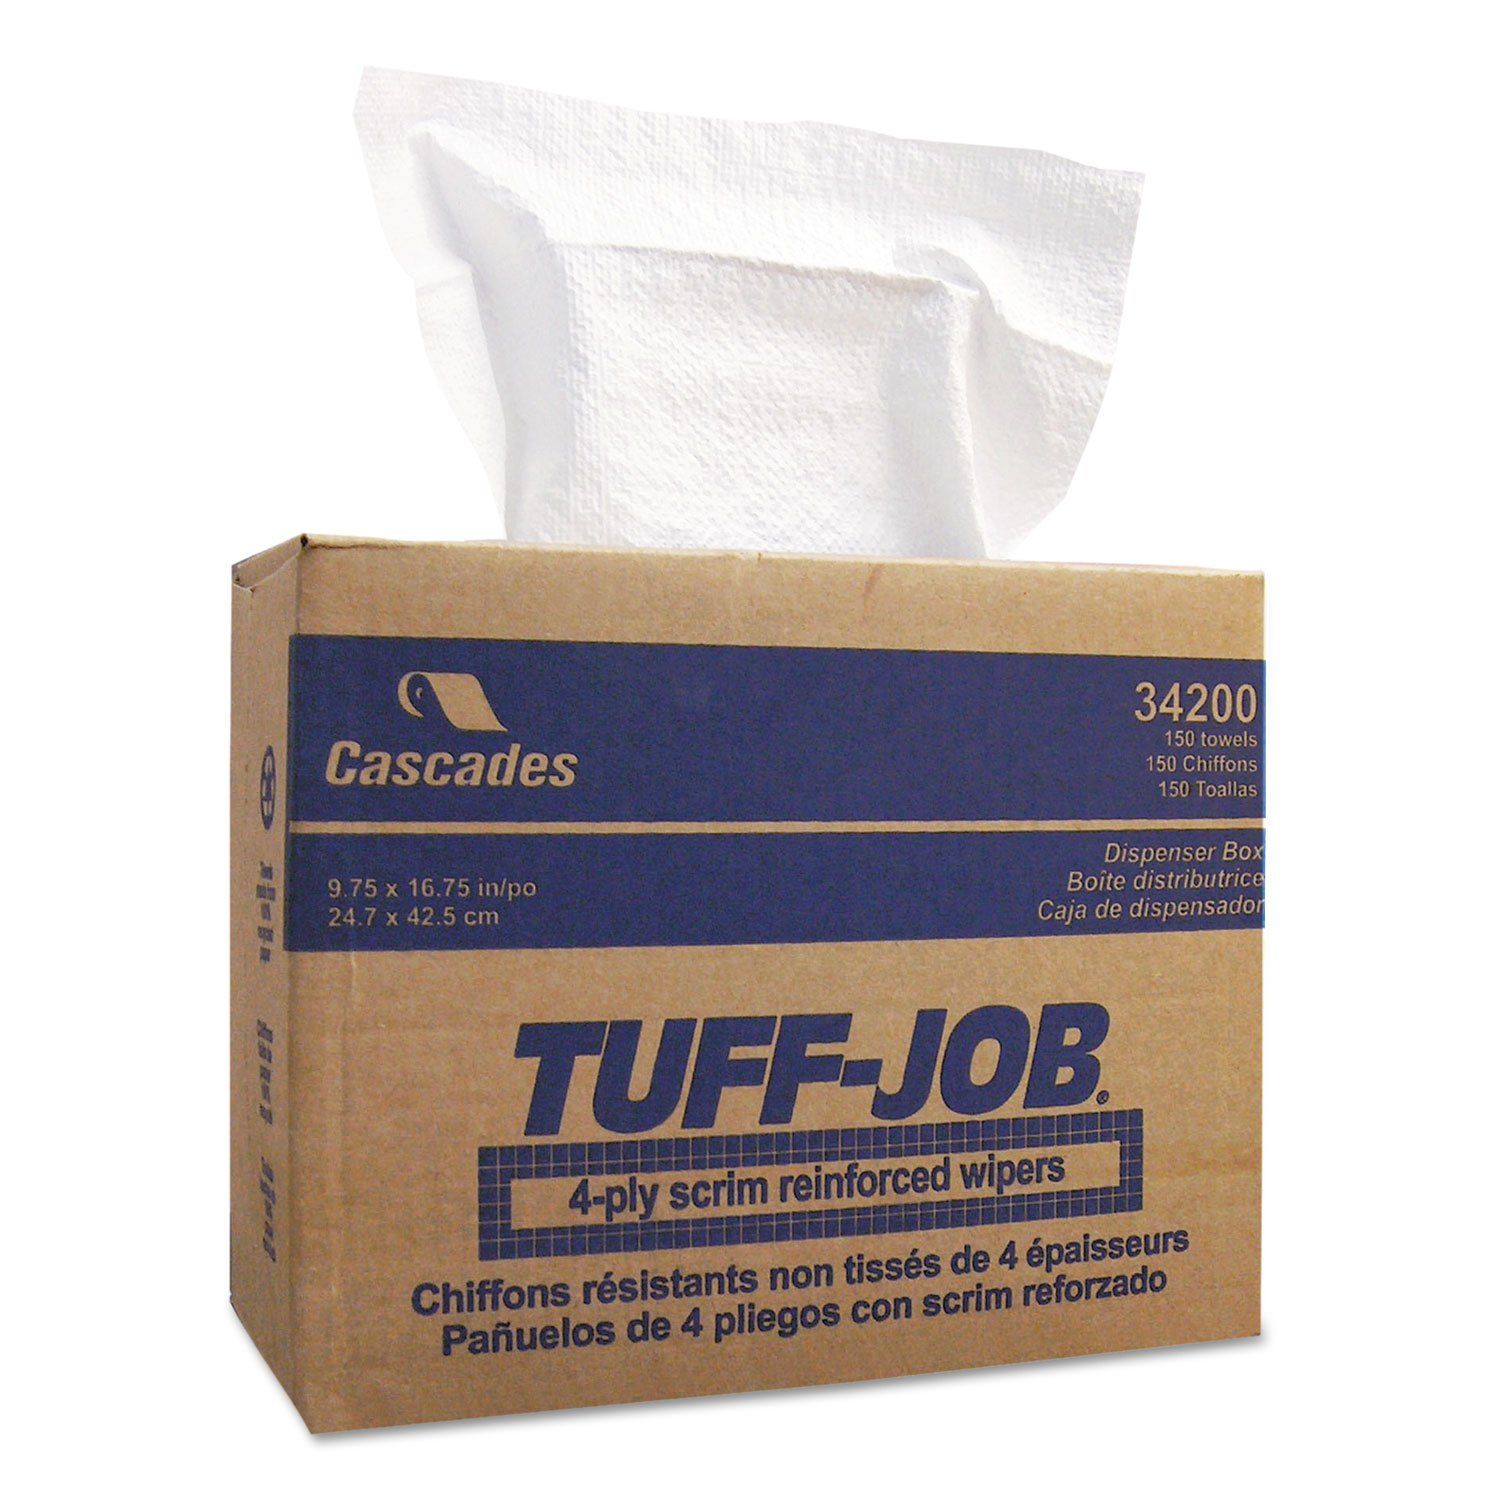 Amazon.com: CSD34200 - Tuff-Job Scrim Reinforced Wipers: Health & Personal Care